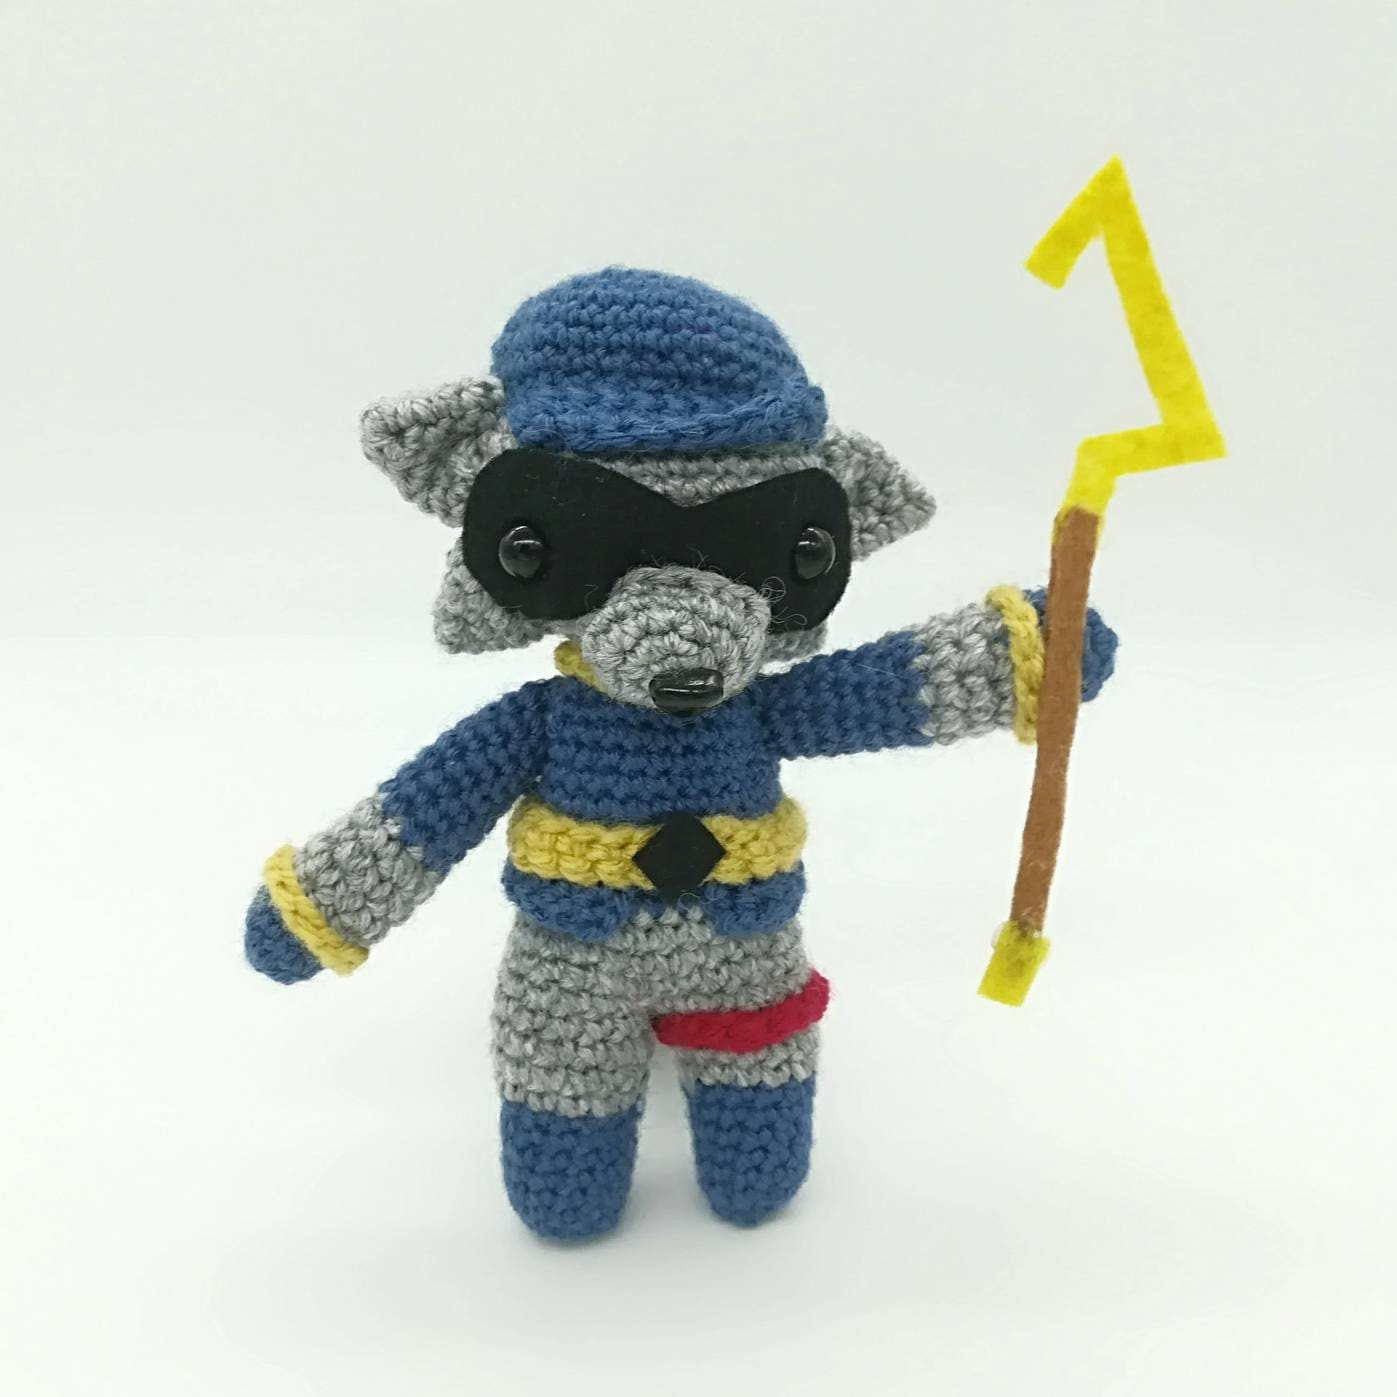 Sly Cooper Stuffed Animal, Sly Cooper Plush Handmade Etsy